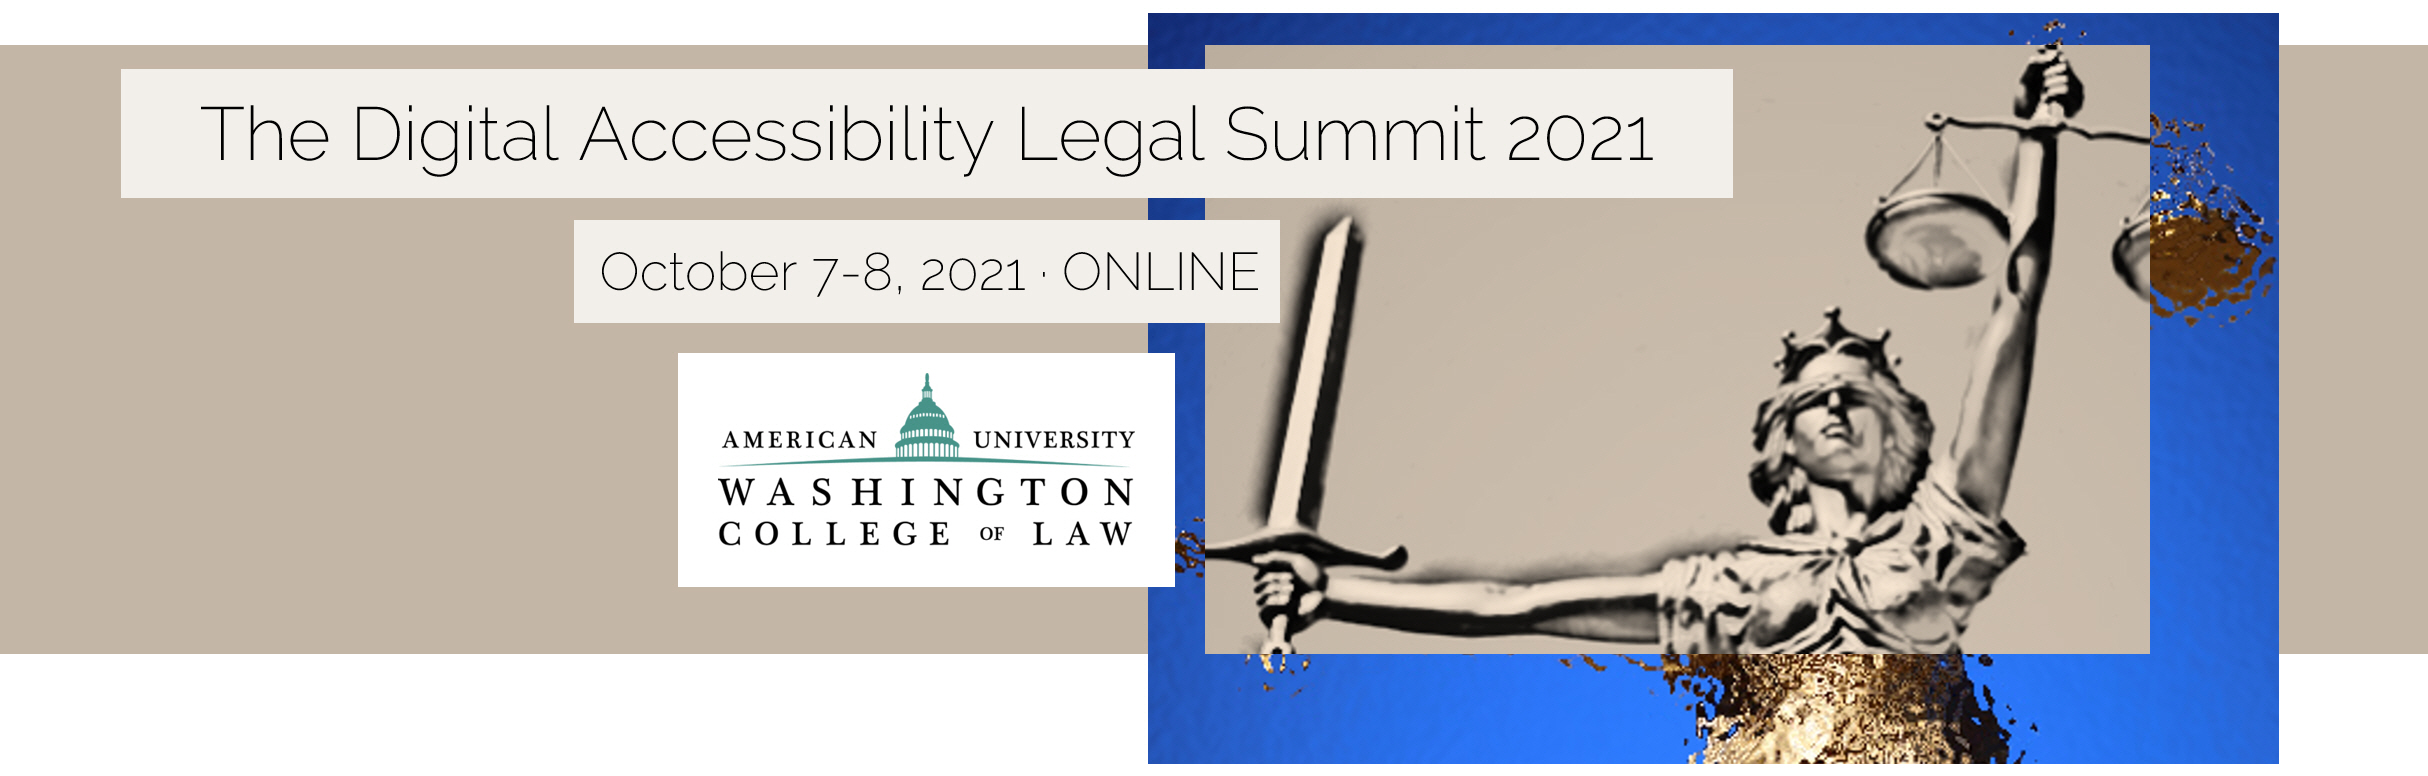 The Digital Accessibility Legal Summit 2019. March 12, 2019, Anaheim, CA. Monday Training Course: Organizational Risk Assessments and Risk Mitigation Tools. Image of Lady Liberty blindfolded with sword and scales. www.accessibility.legal.